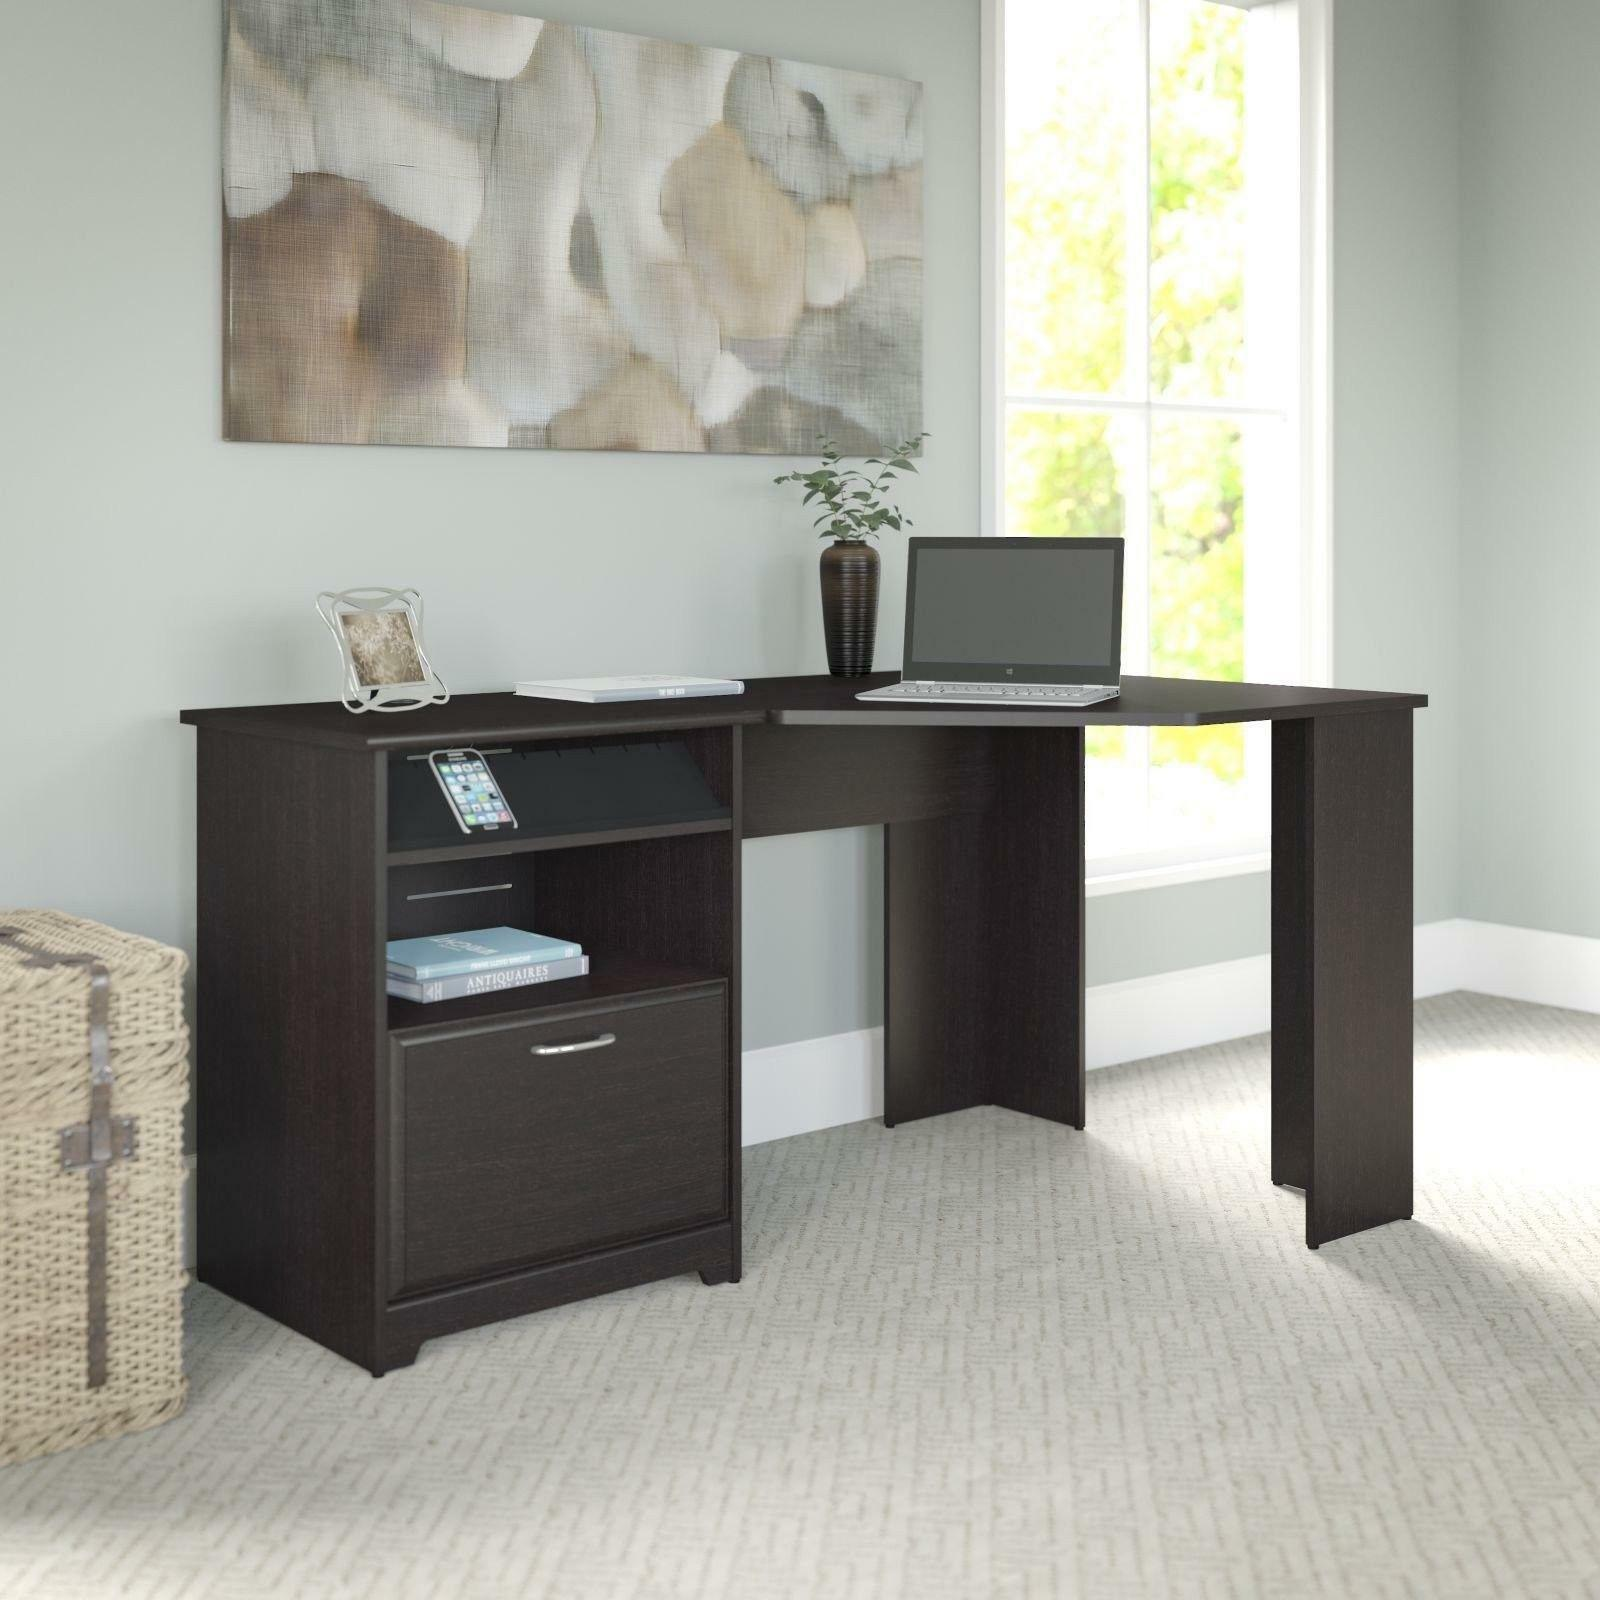 Bush Cabot Espresso Oak Finish Corner Computer Desk Wc 31815 03 Ebay # Muebles Para Wc